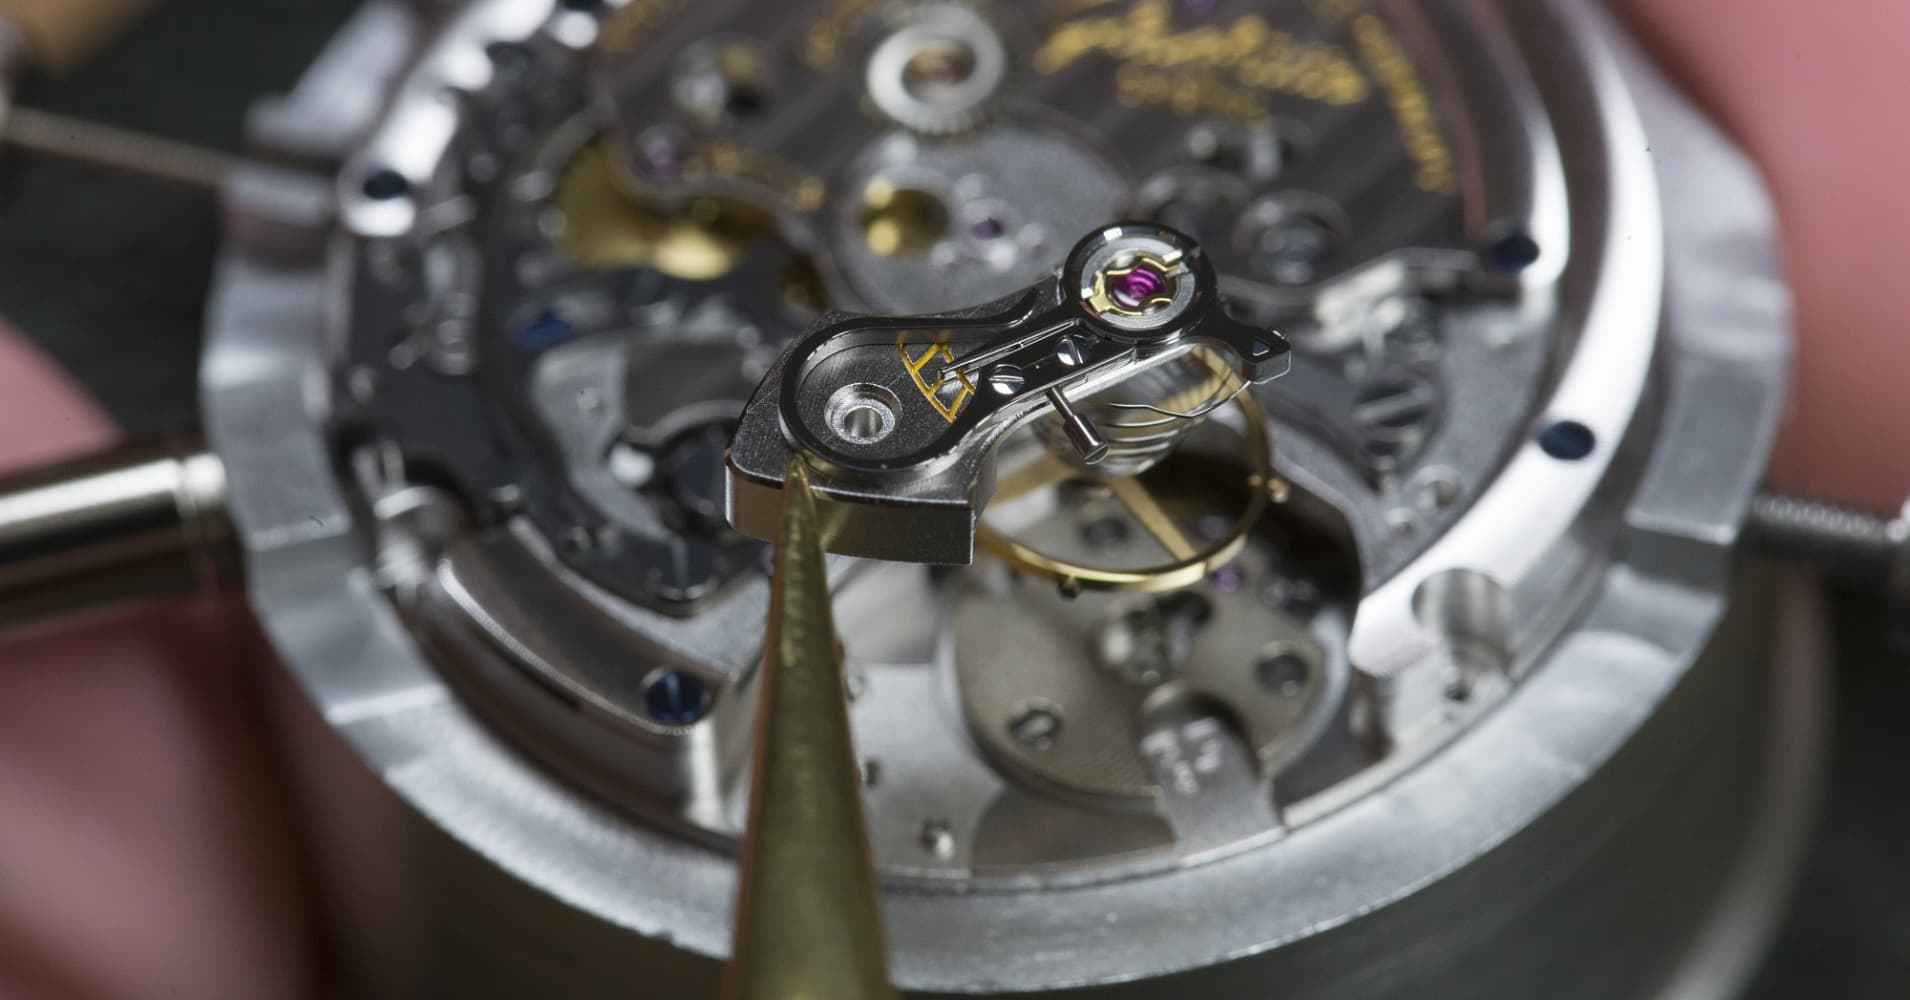 A watchmaker prepares to position an escapement wheel during the assembly of a Senator Chronograph Panorama Date luxury wristwatch at the Glashuette Original watch factory.